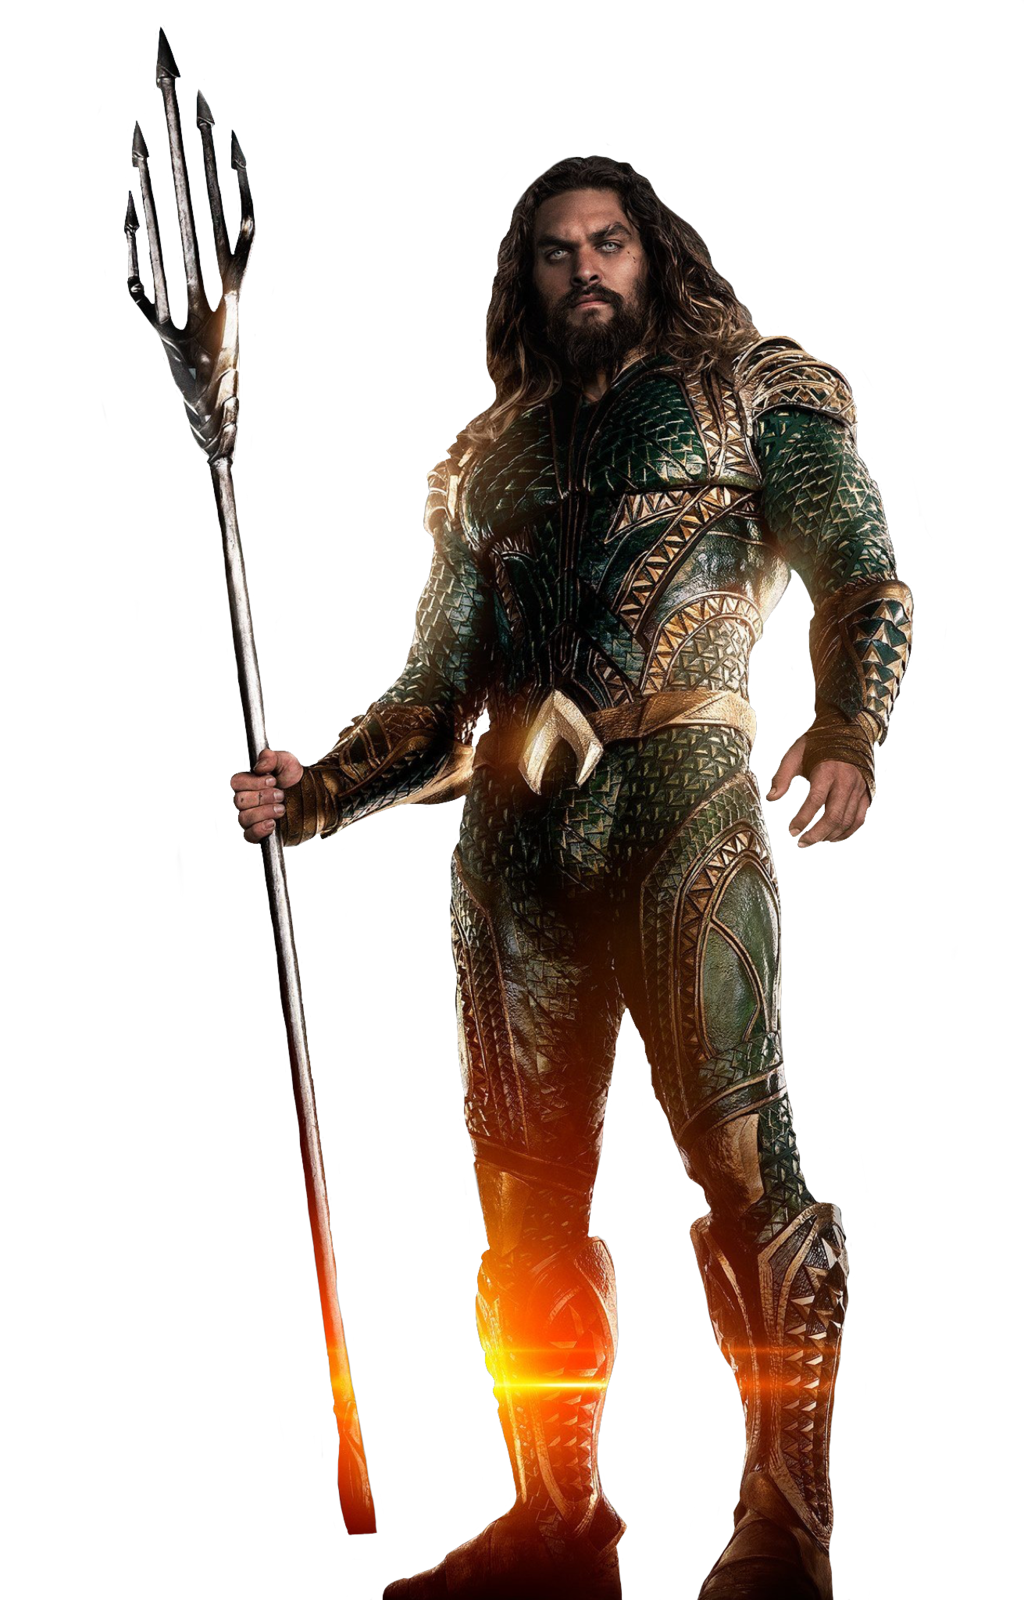 . PlusPng.com Aquaman (Justice League) PNG #1 by Anna-x-Anarchy - Aquaman PNG